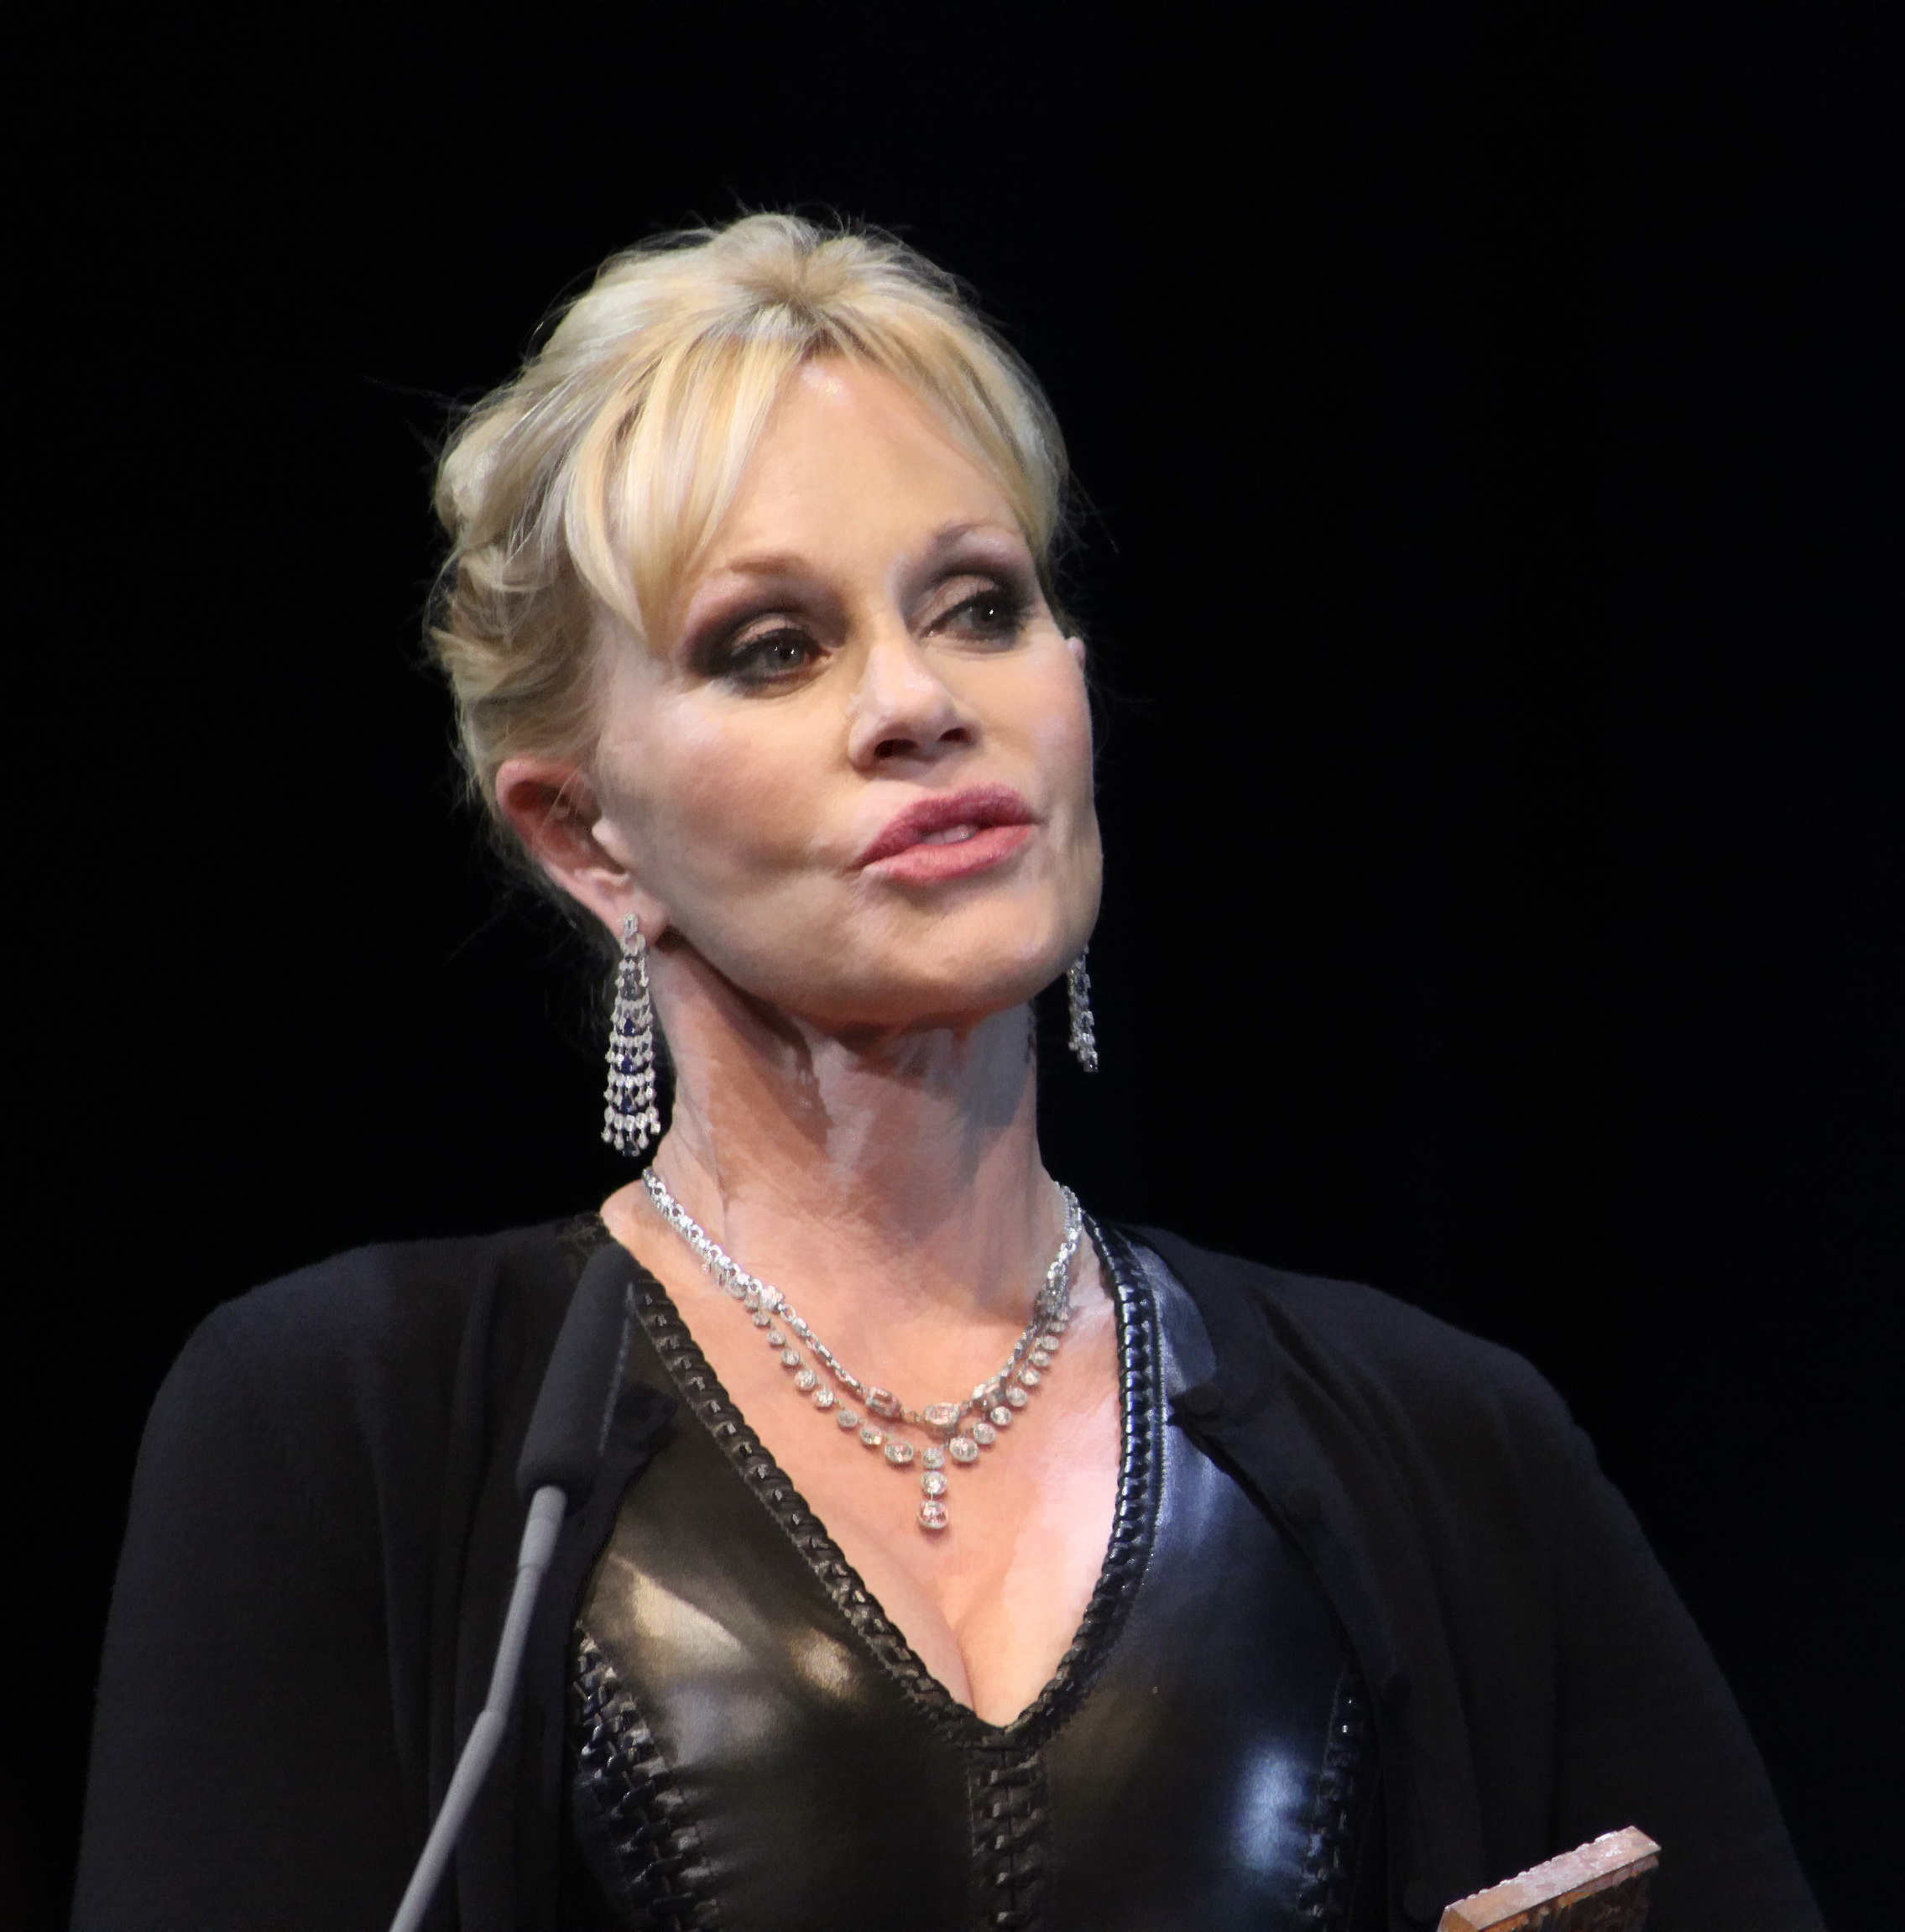 Melanie Griffith earned a  million dollar salary - leaving the net worth at 20 million in 2018